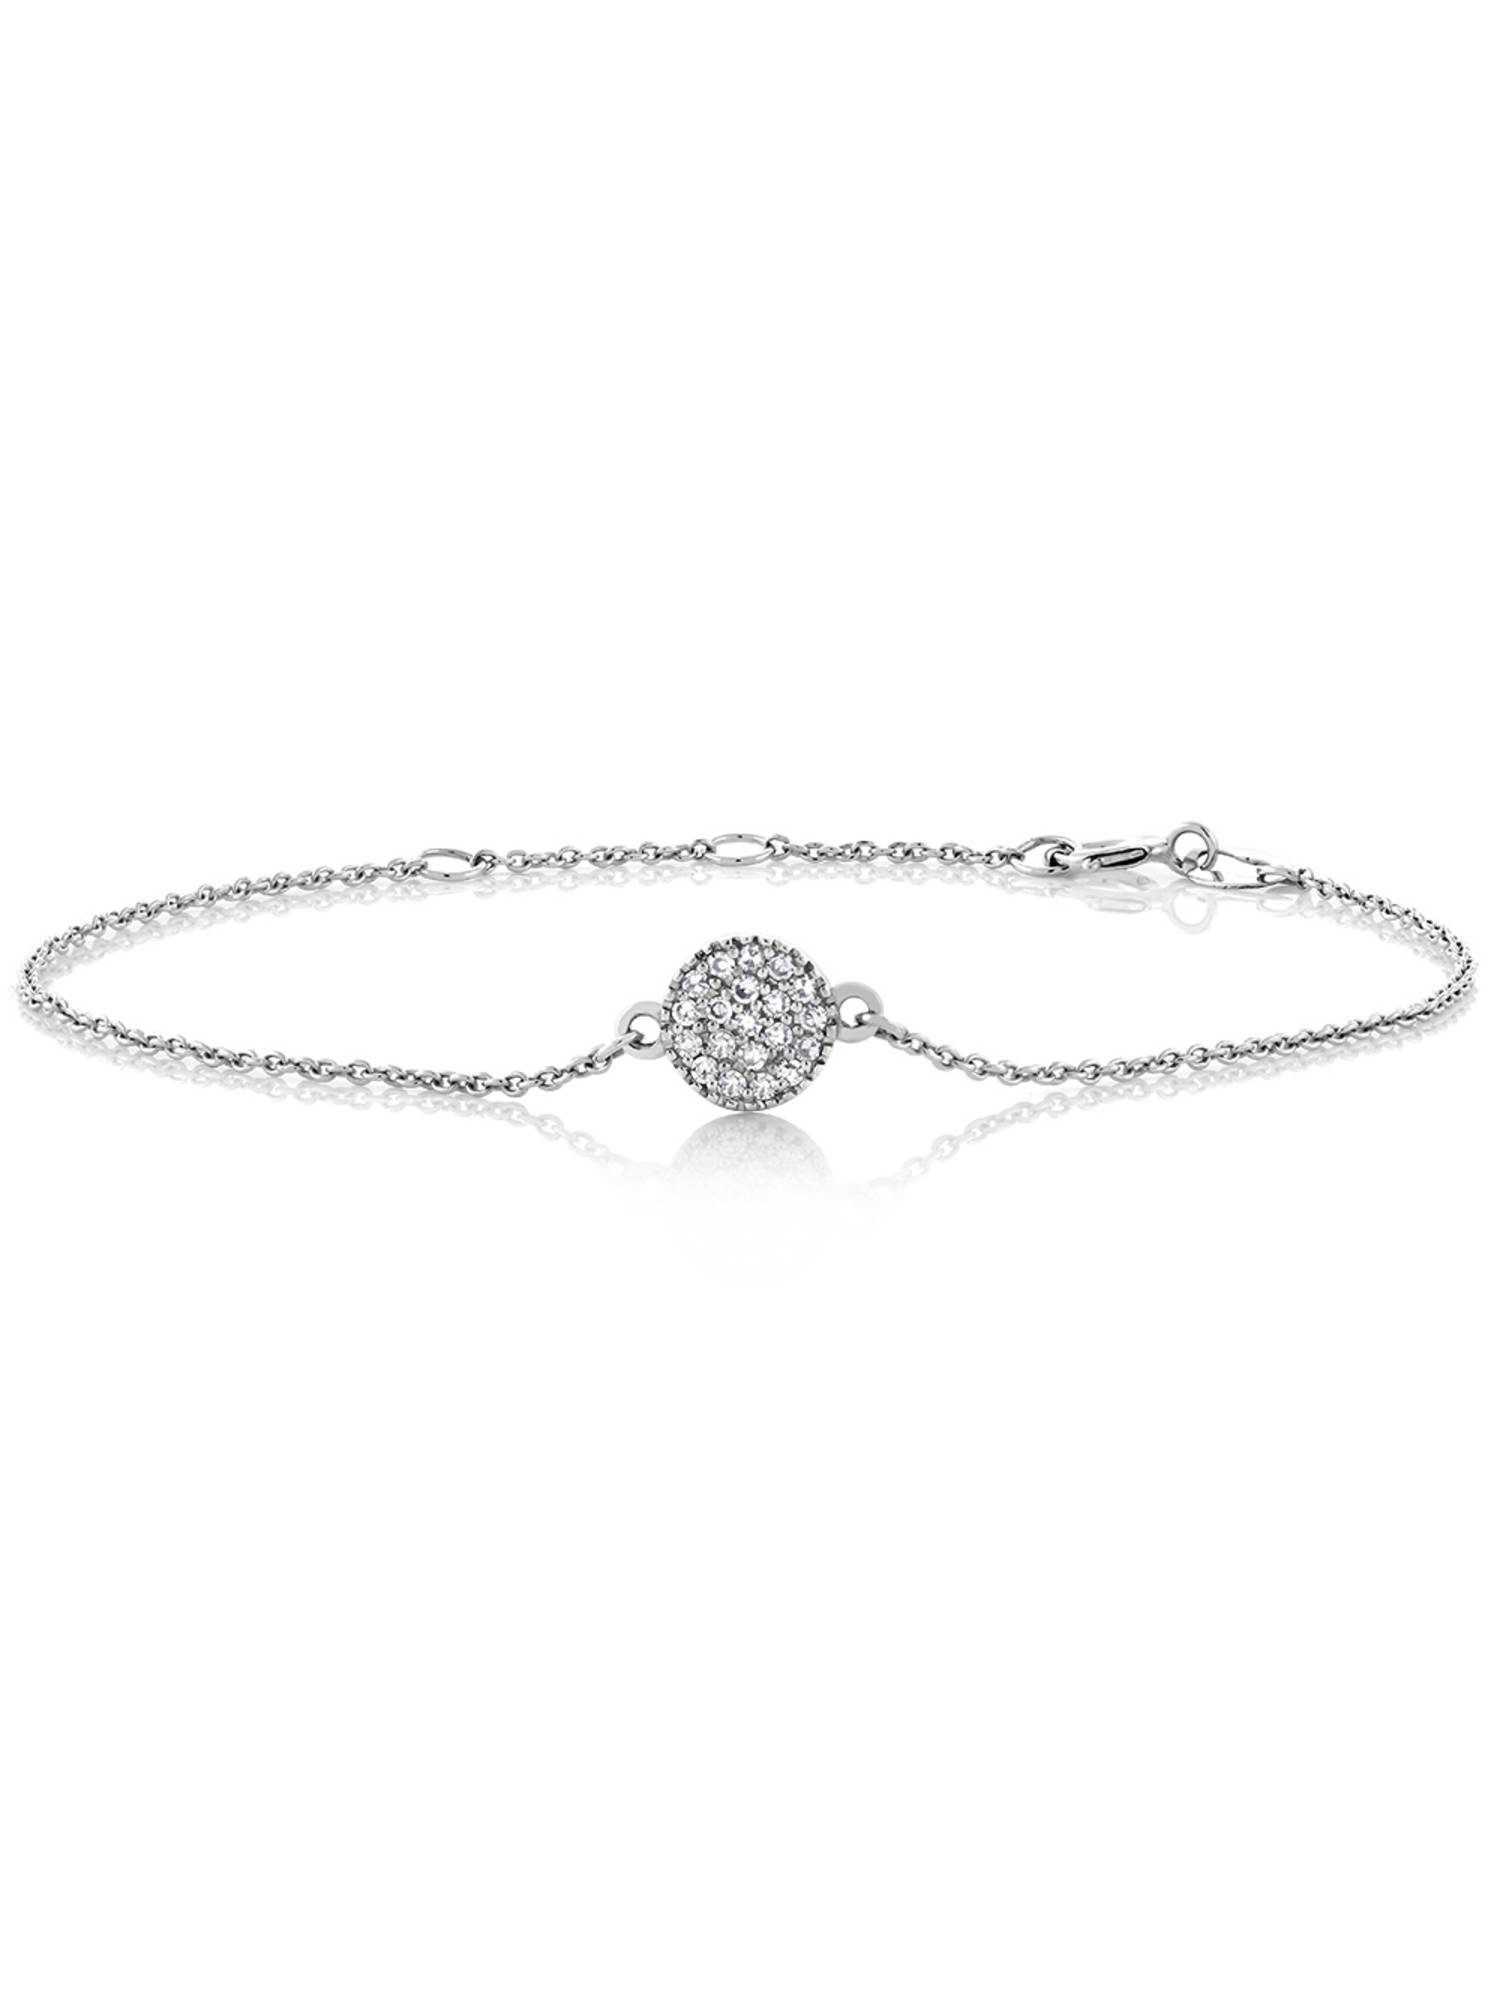 10K Solid White Gold 0.10 cttw Diamond Pave Disc Bracelet 6""